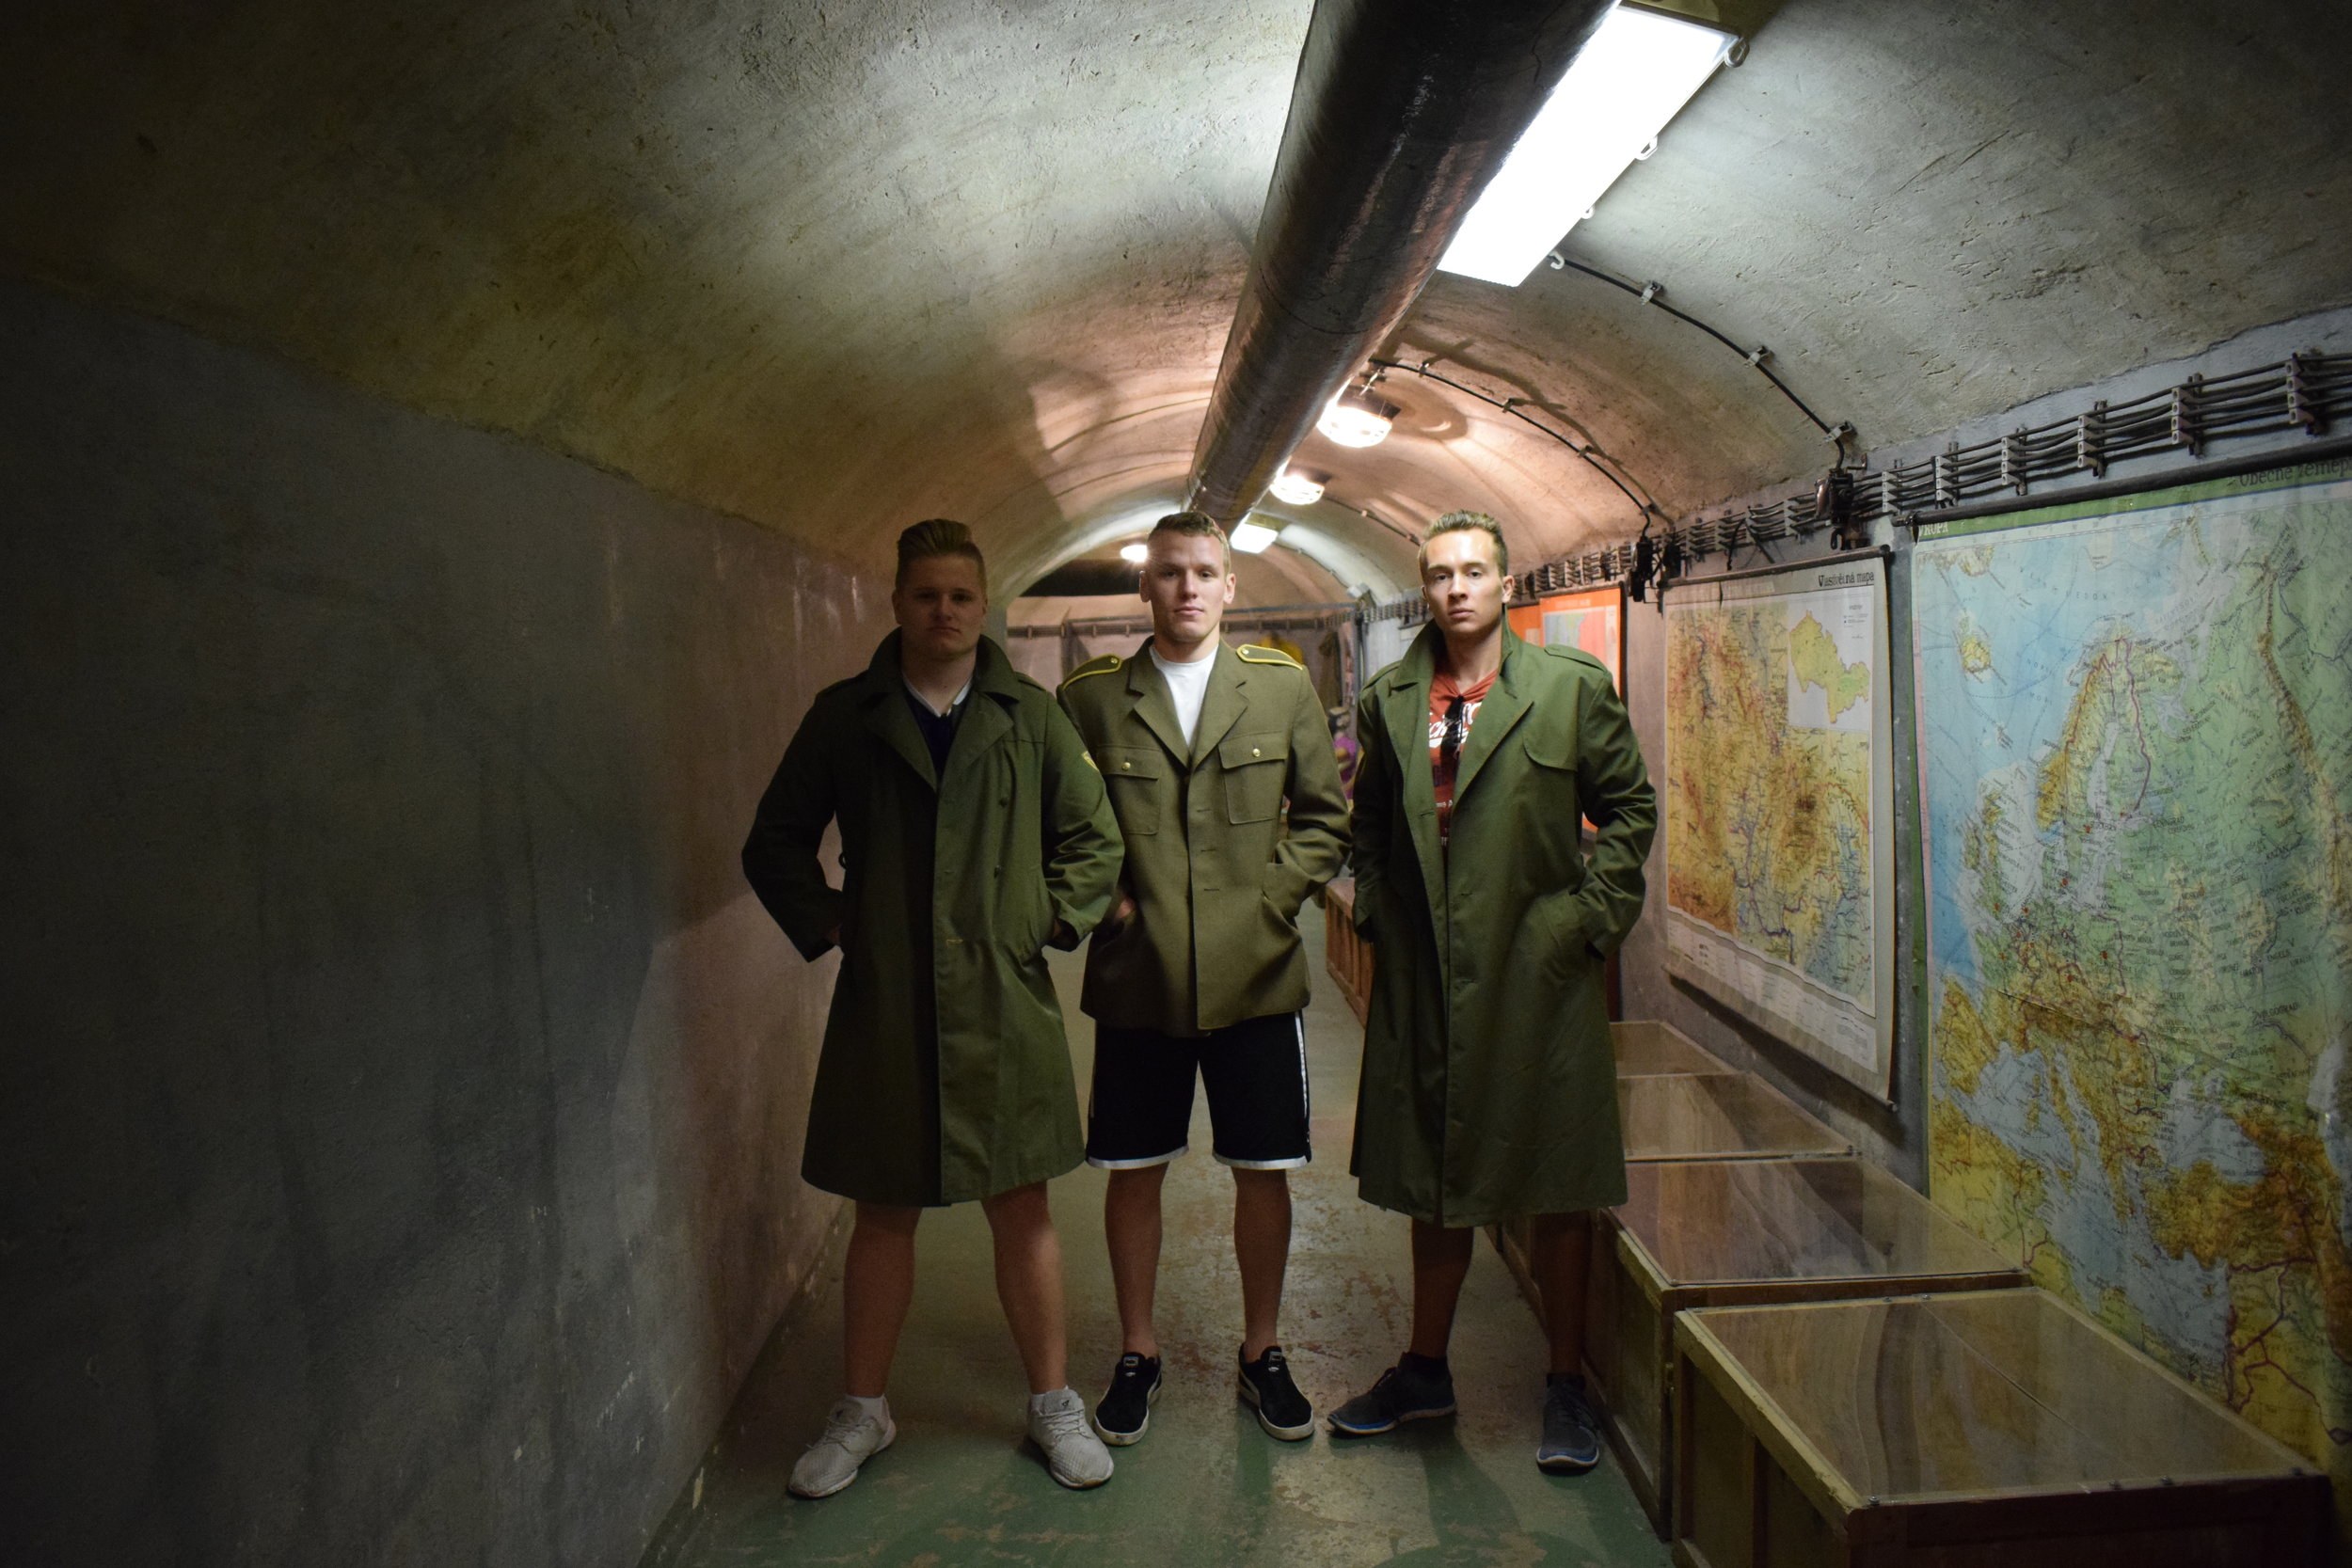 The bunker contains a lot of communist-era memorabilia, and we just had to take advantage of that!